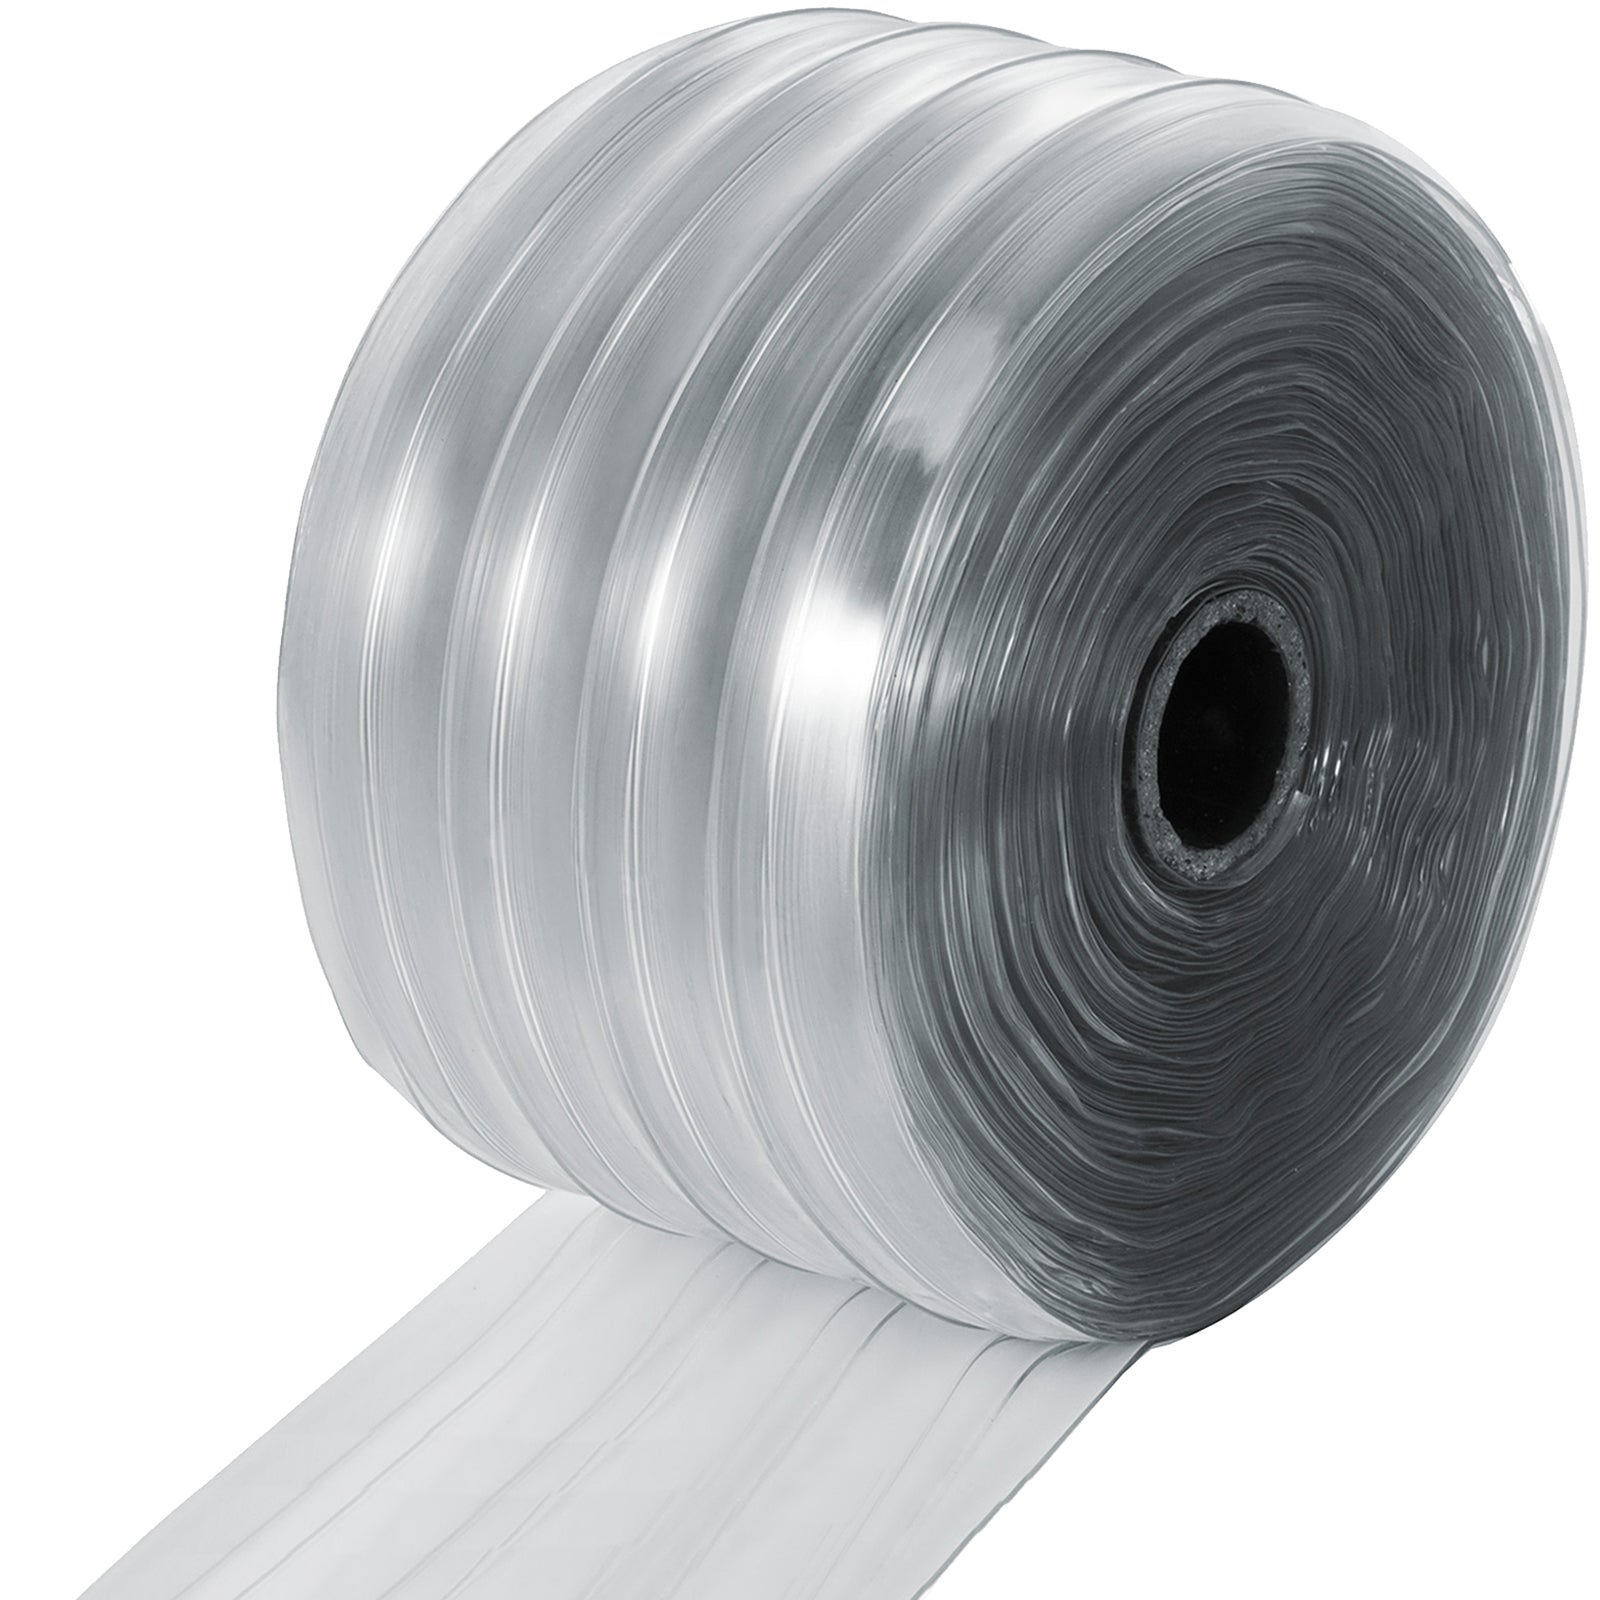 Pvc Strip Curtain 45m/147ft Roll Warehouse 2.5mm/0.1in Outdoor Mall Door Curtain